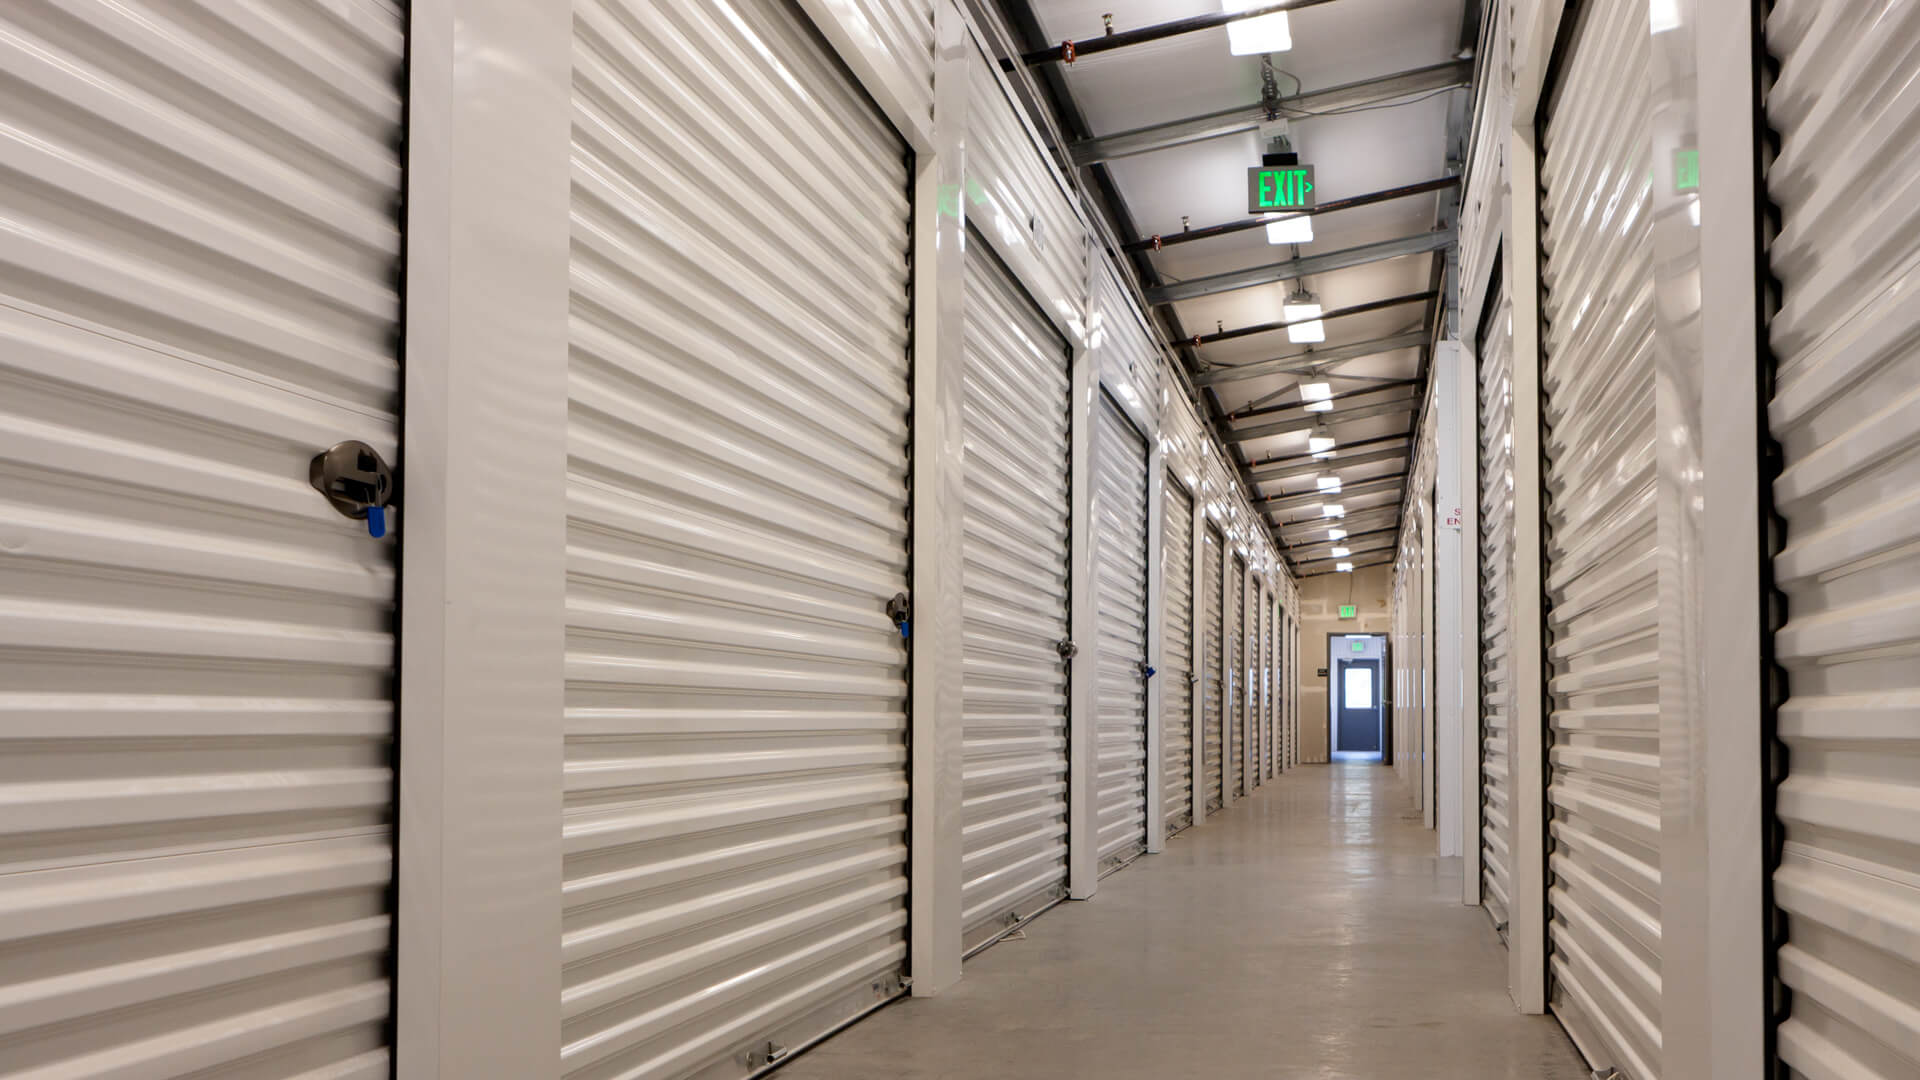 Looking down an empty hallway of a storage facility